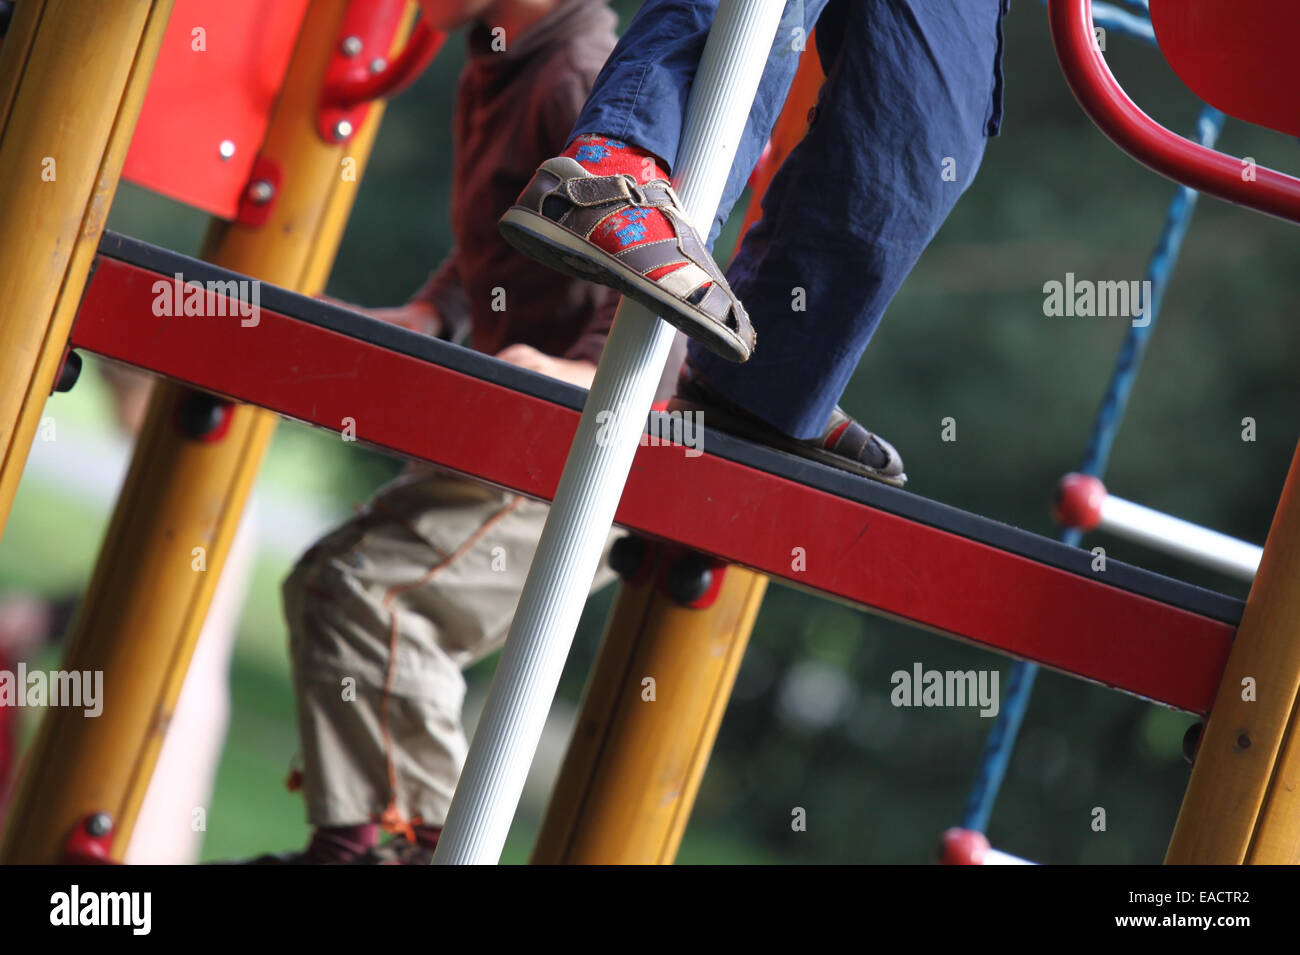 Little boy's leg is seen as he plays at colorful playground - Stock Image